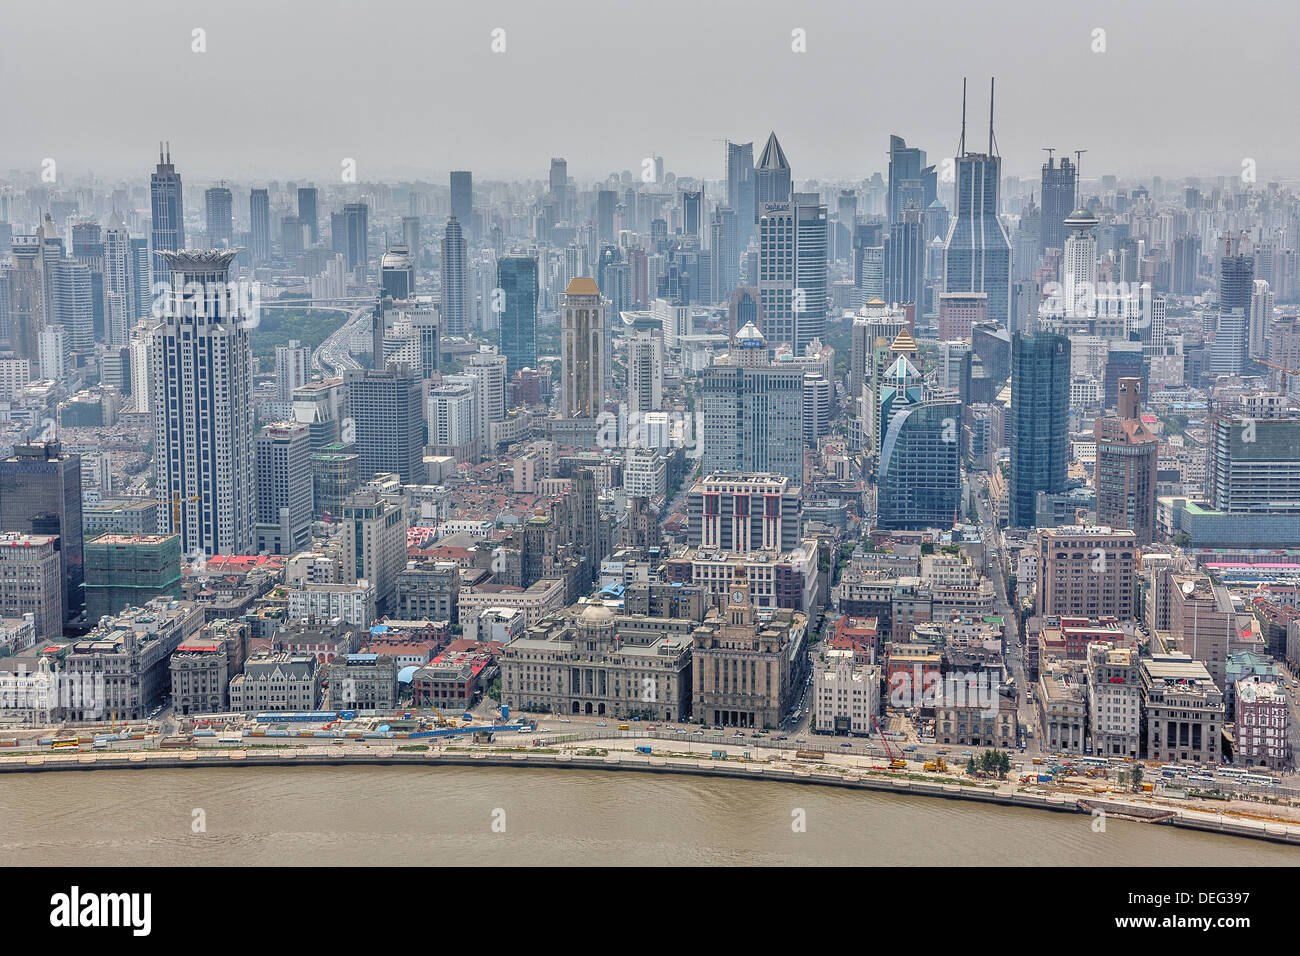 https://c8.alamy.com/comp/DEG397/shanghai-is-the-largest-city-by-population-in-the-peoples-republic-DEG397.jpg